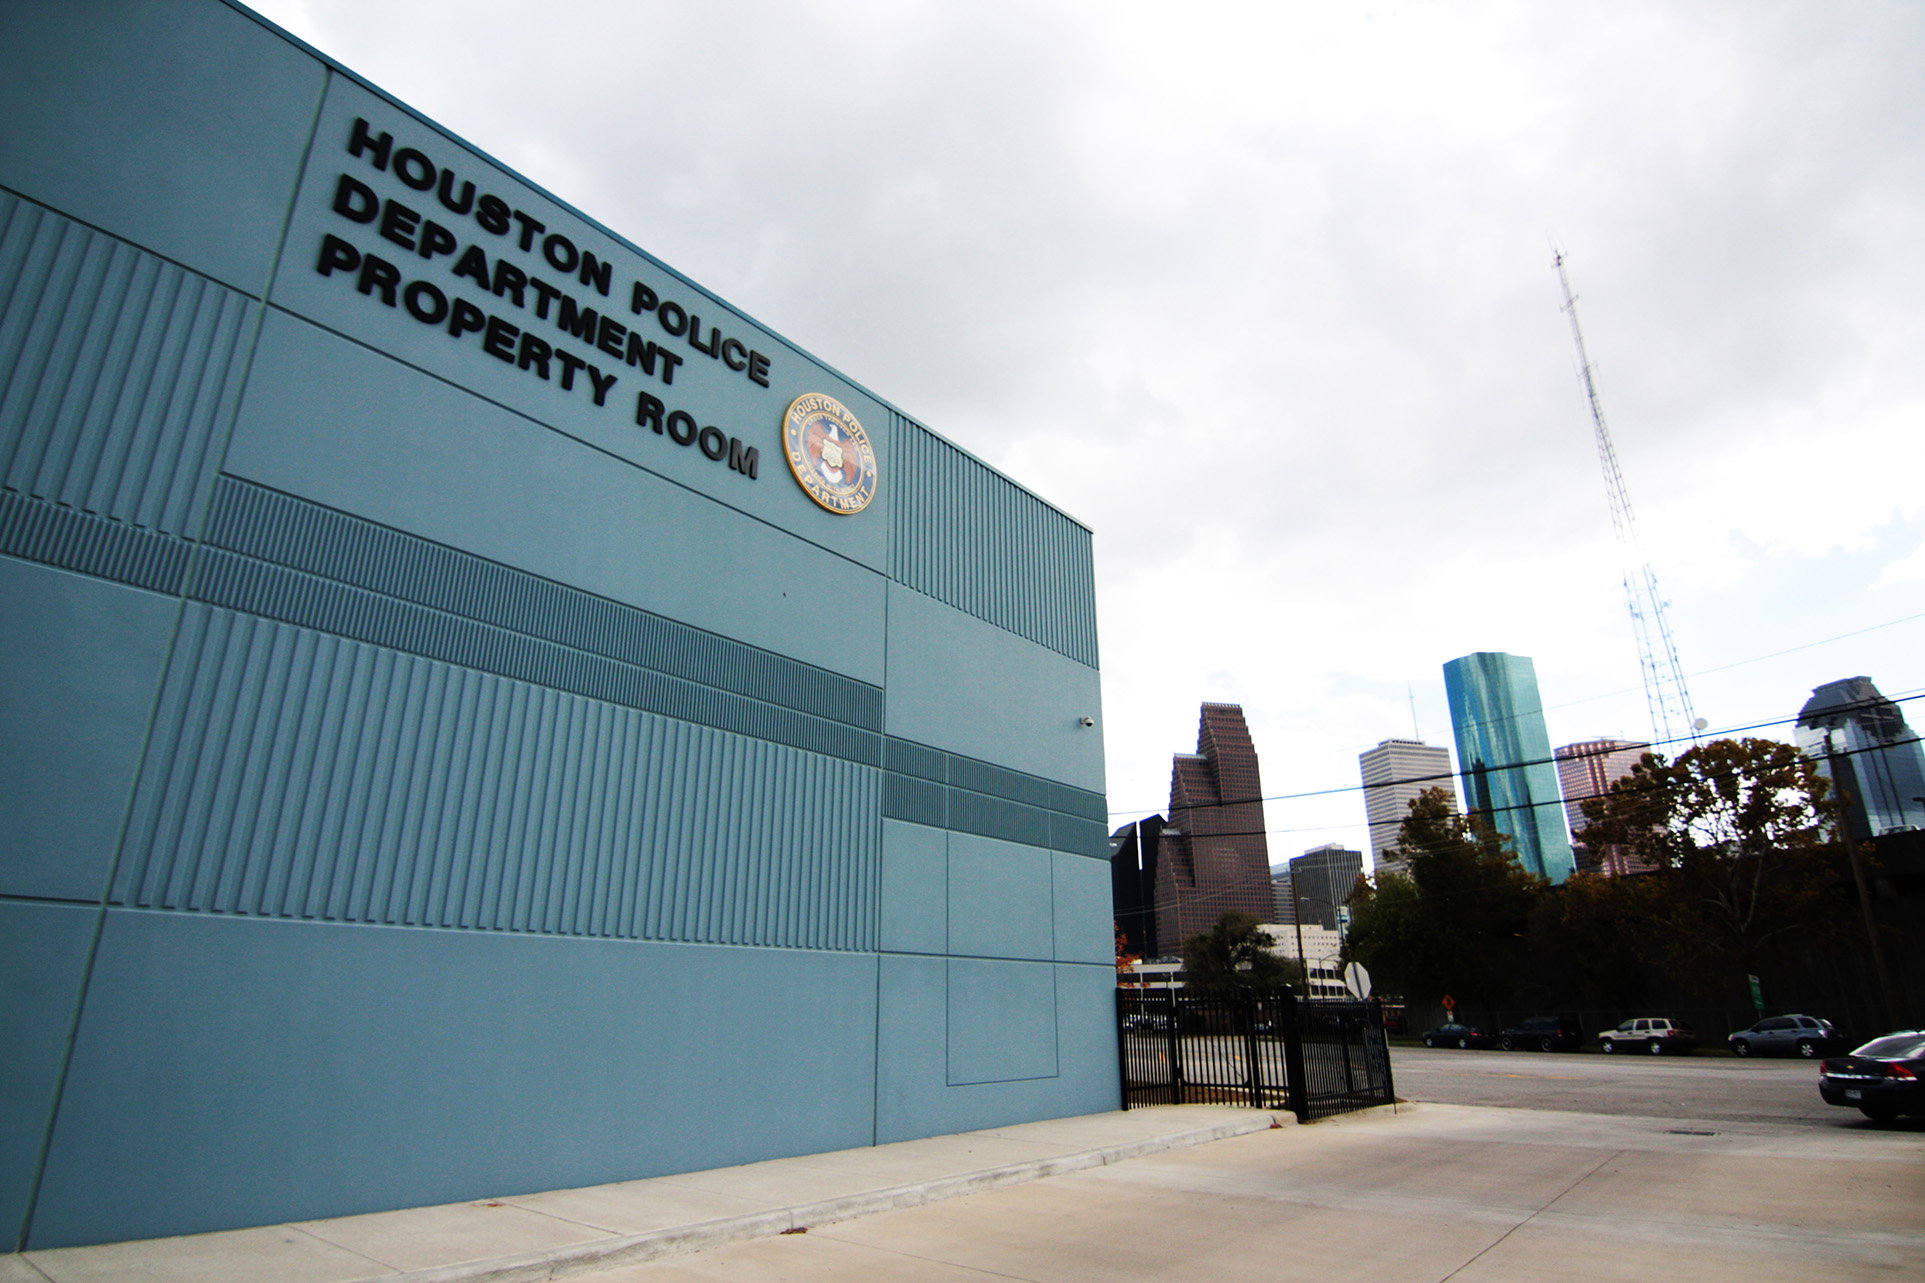 Houston Police Department Building